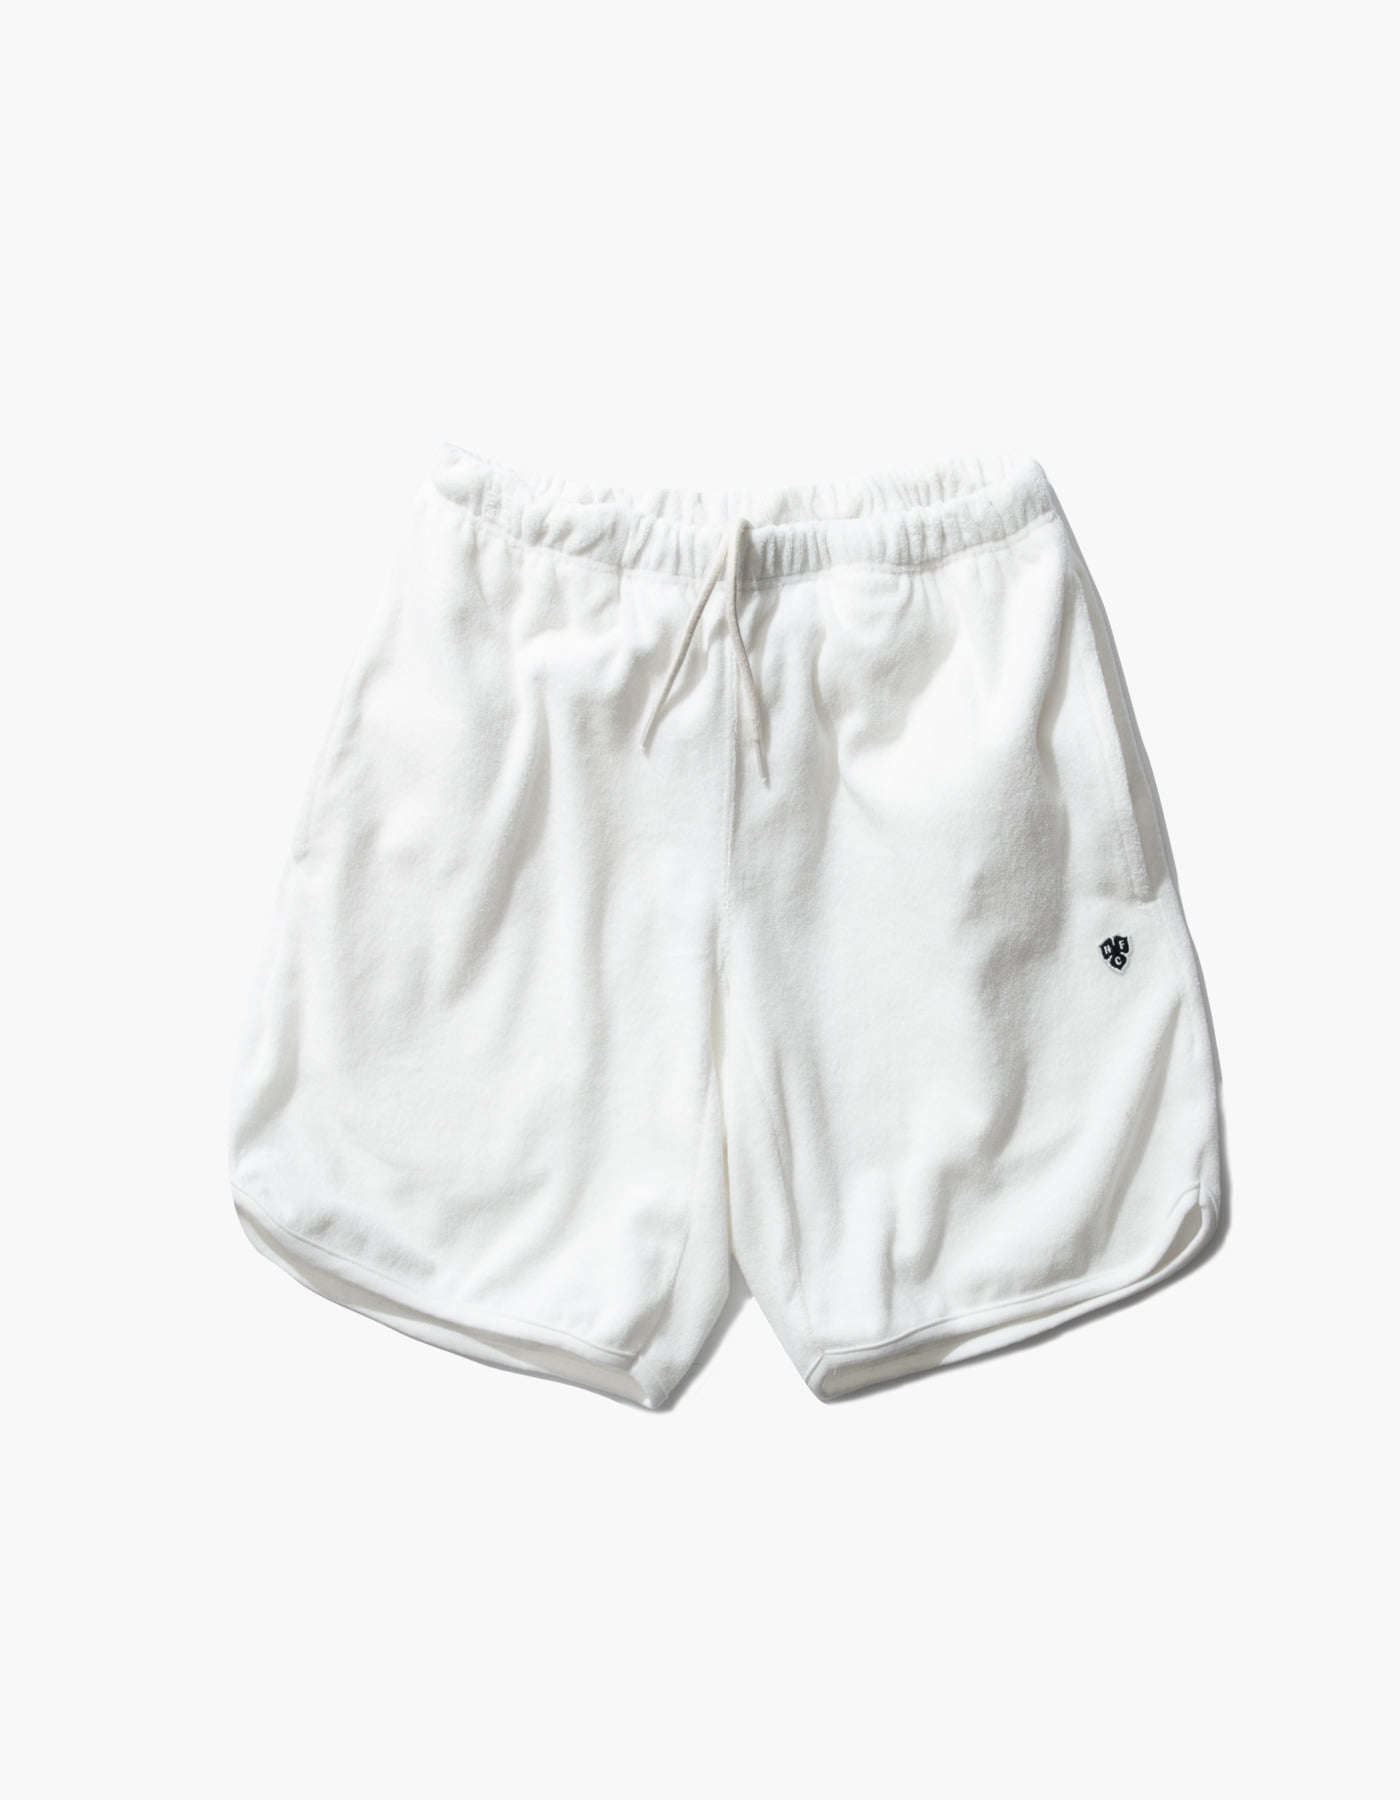 HFC CREST TOWEL SHORTS / WHITE